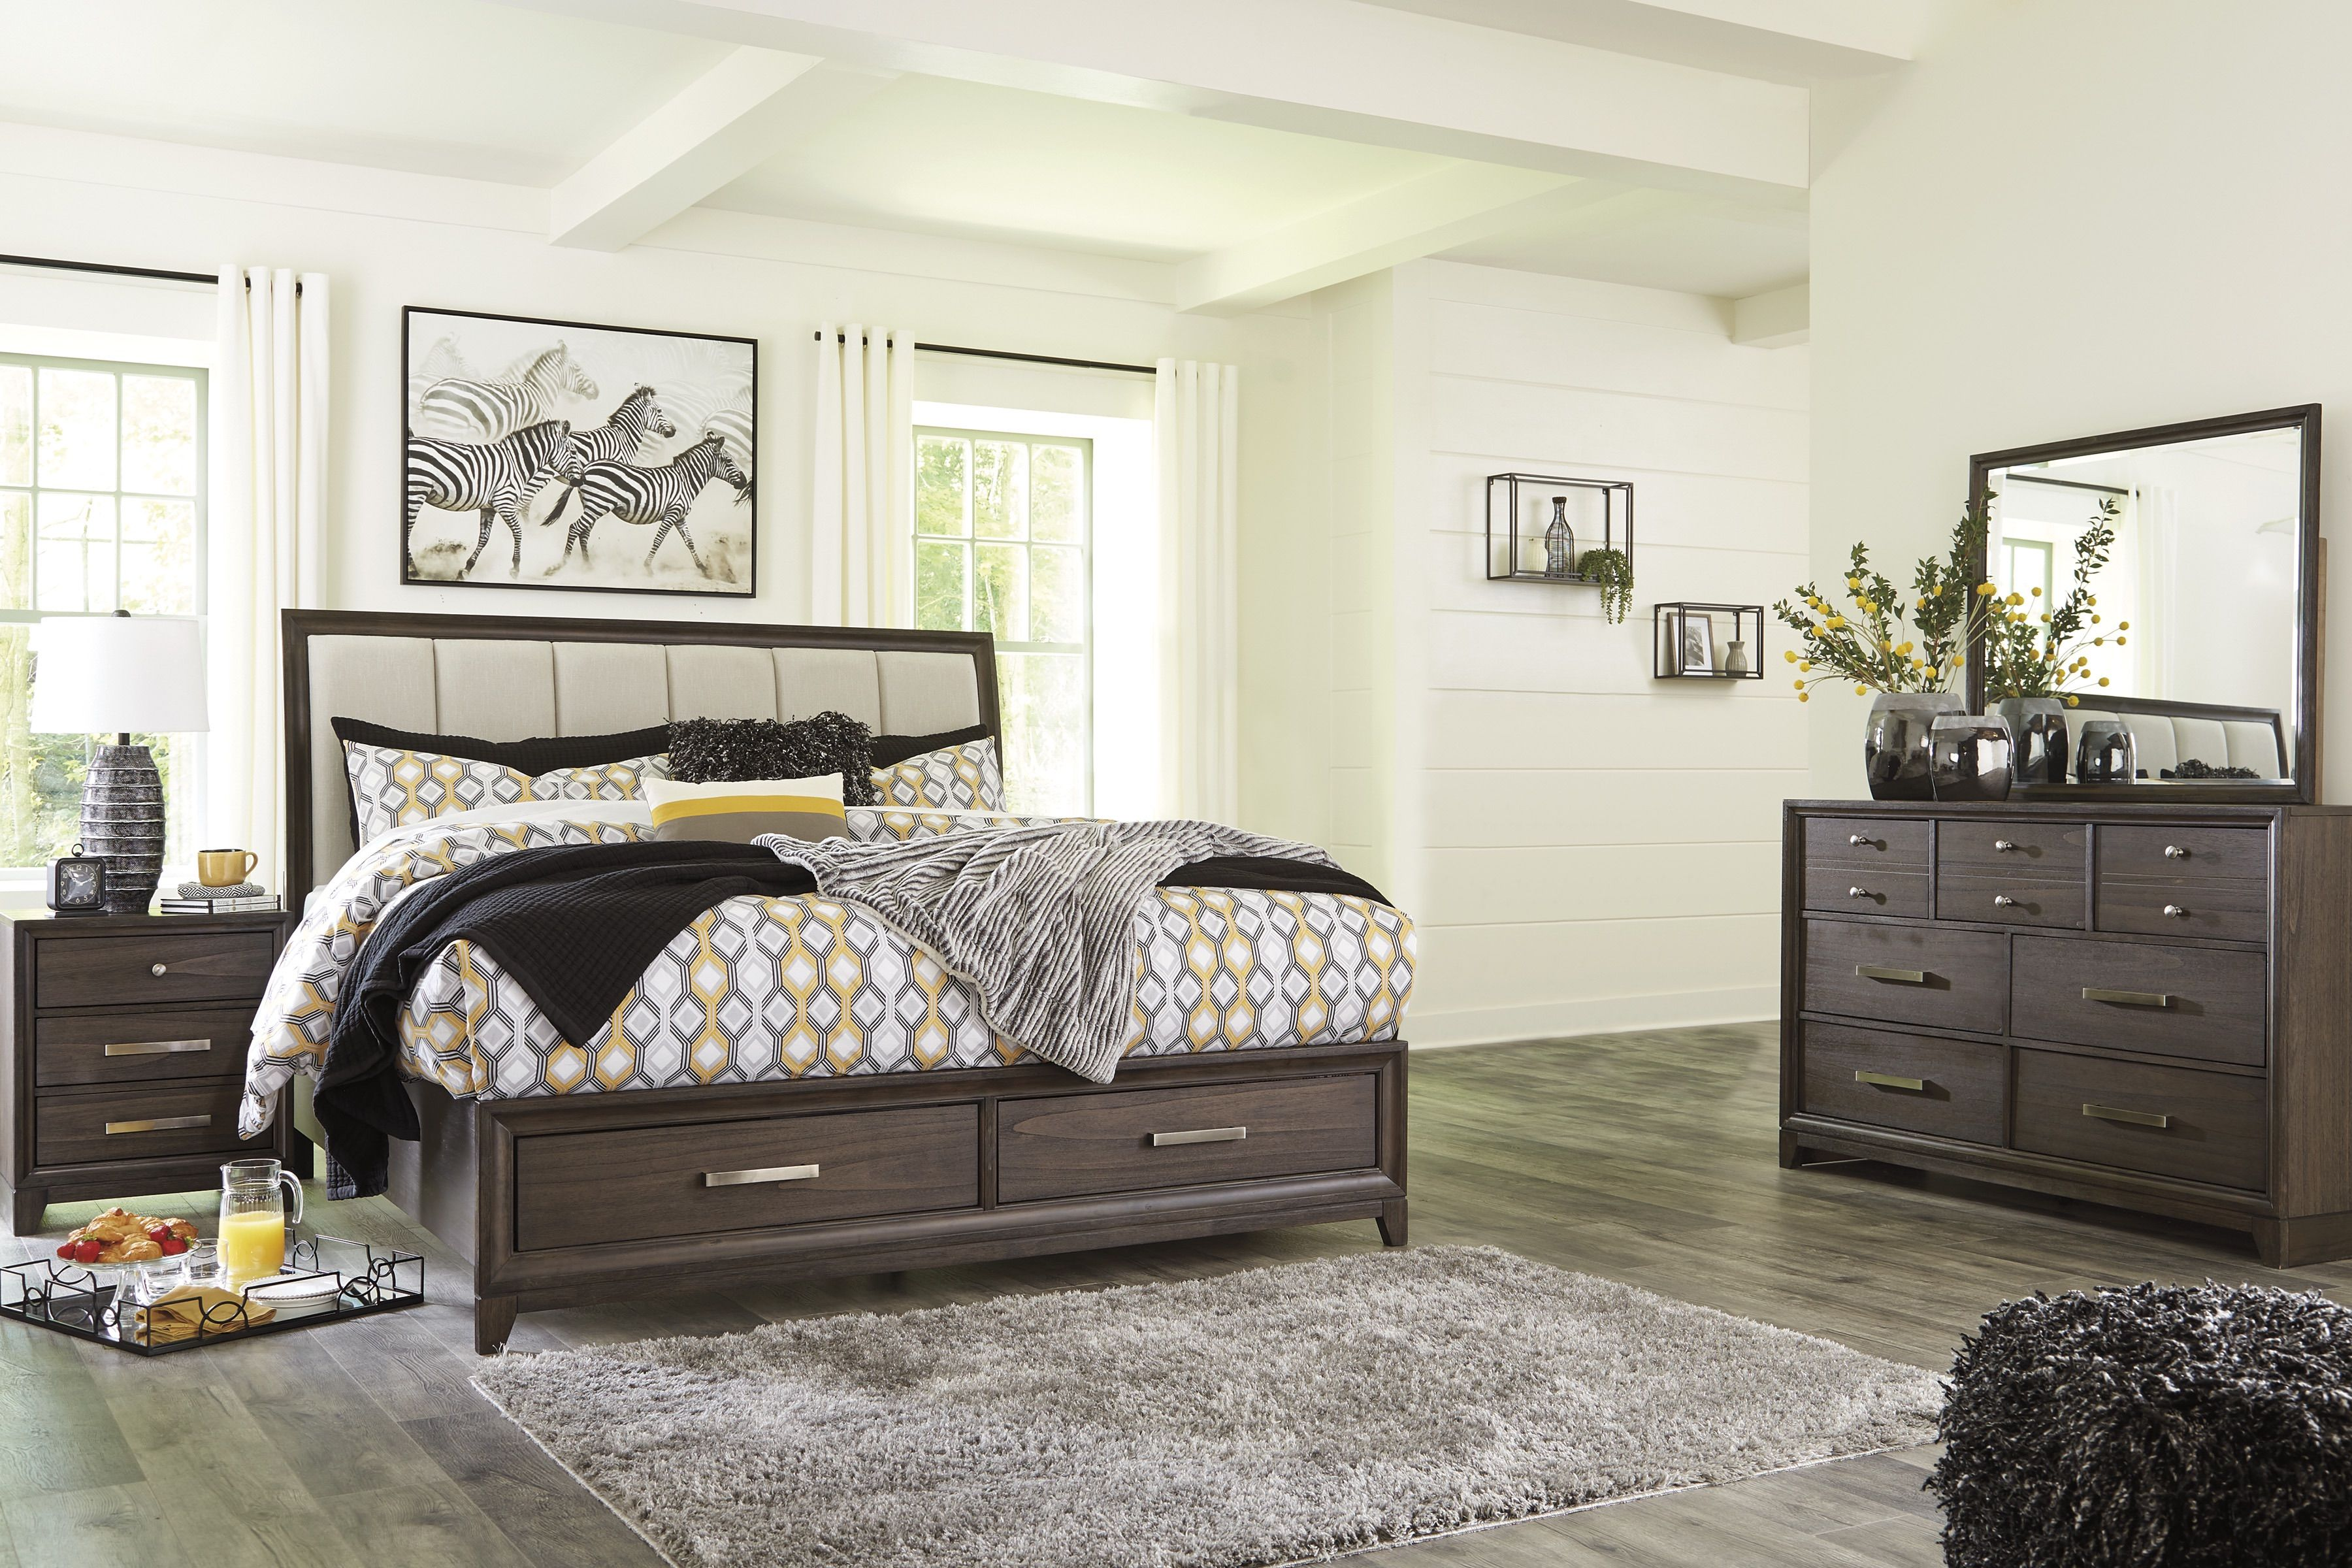 Signature Design By Ashley Brueban 7 Piece Queen Bedroom Set Bundle Same Day Delivery At Rent A Center